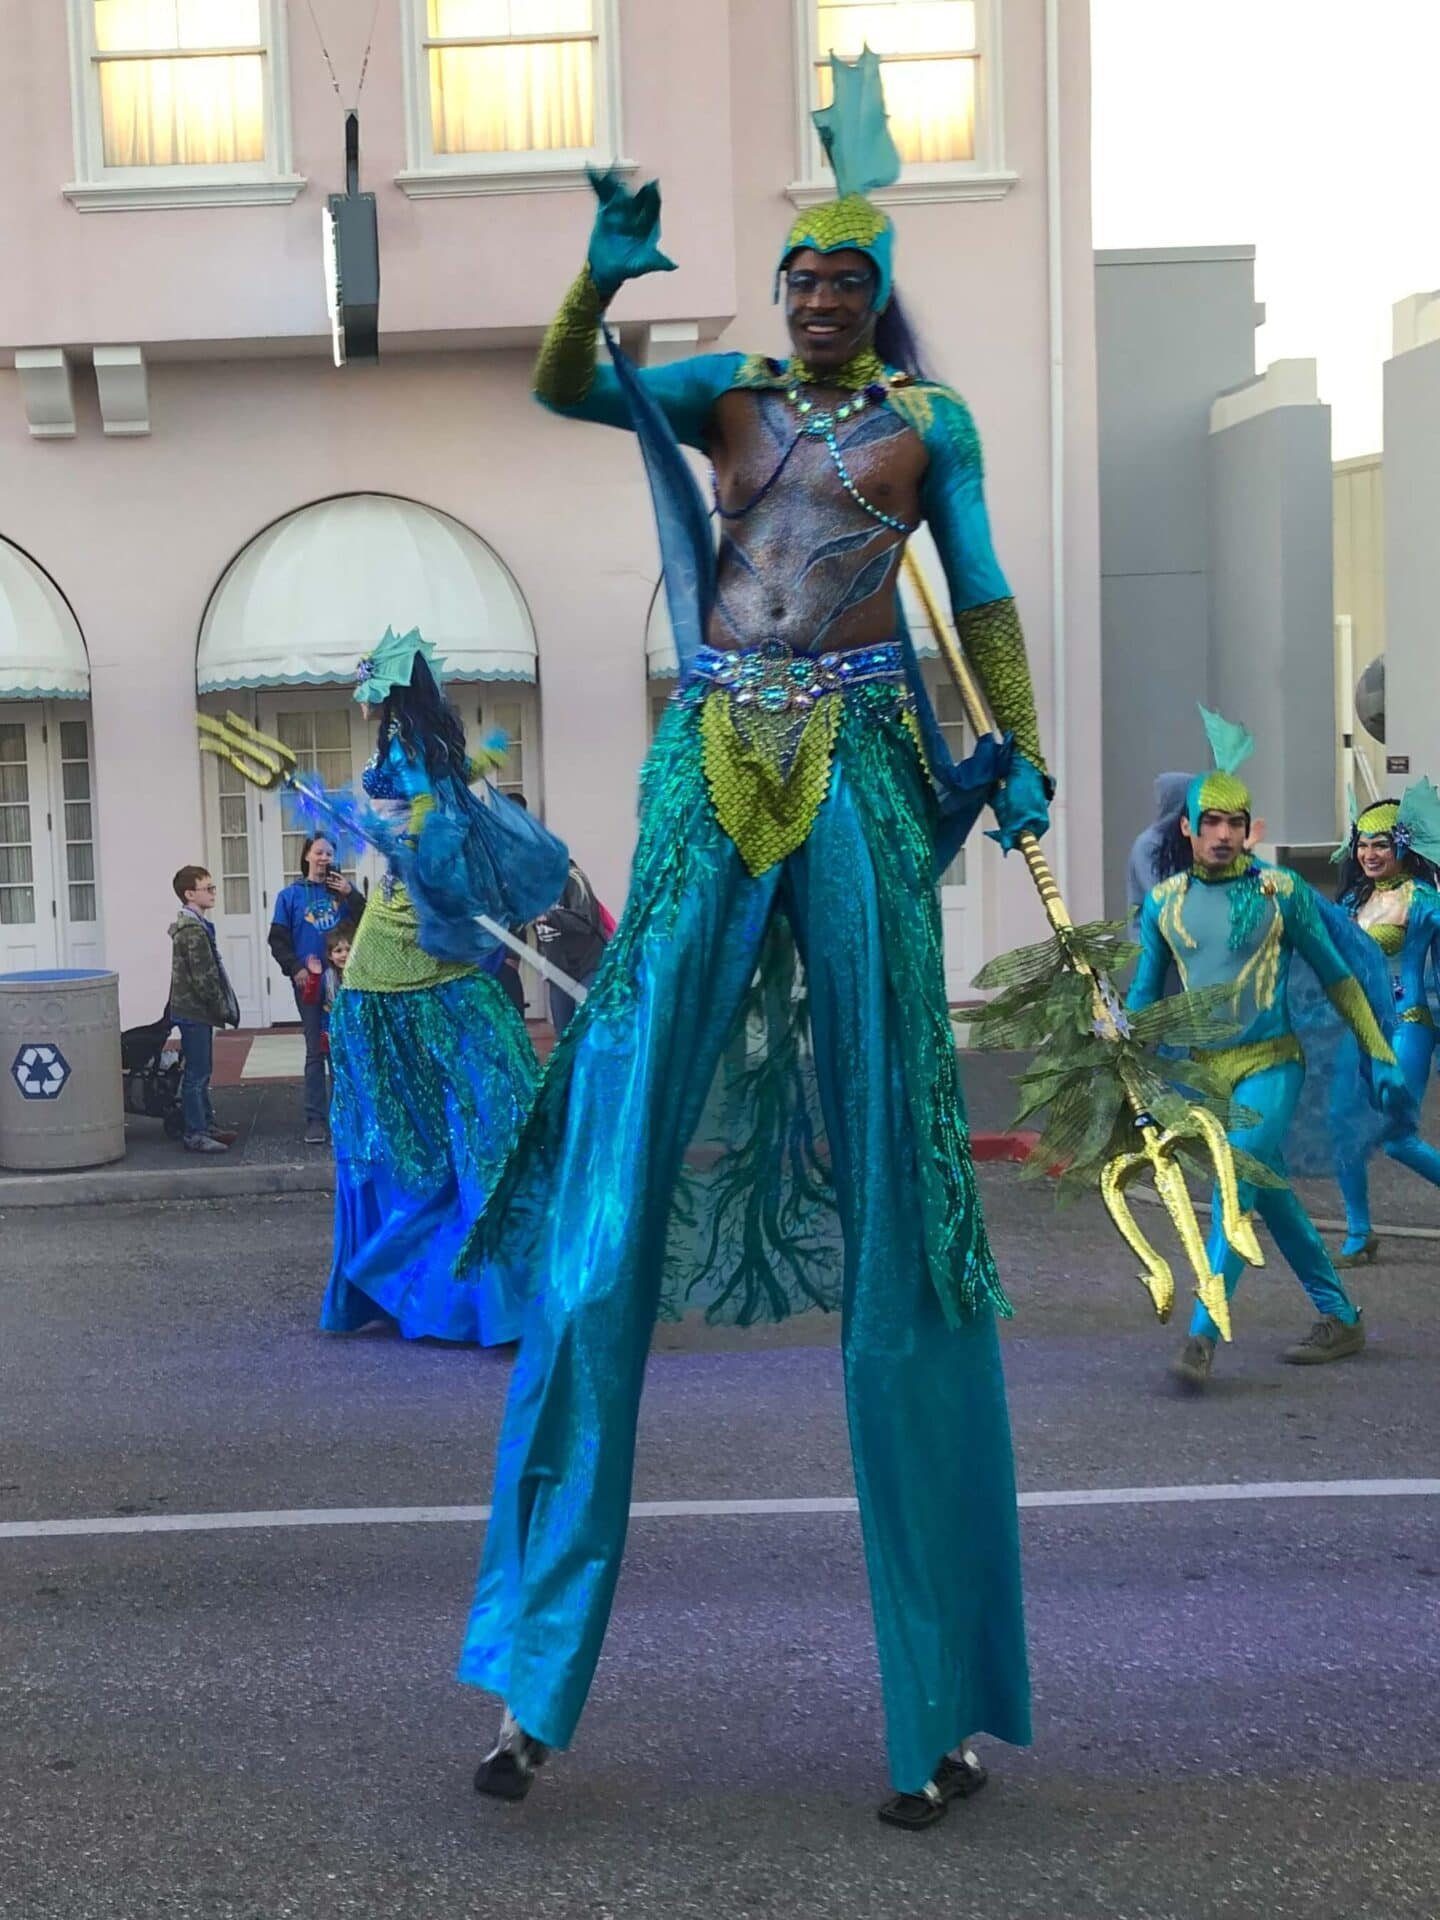 universal Orlando mardi gras parade - universal studios florida. the best universal Orland attractions with kids